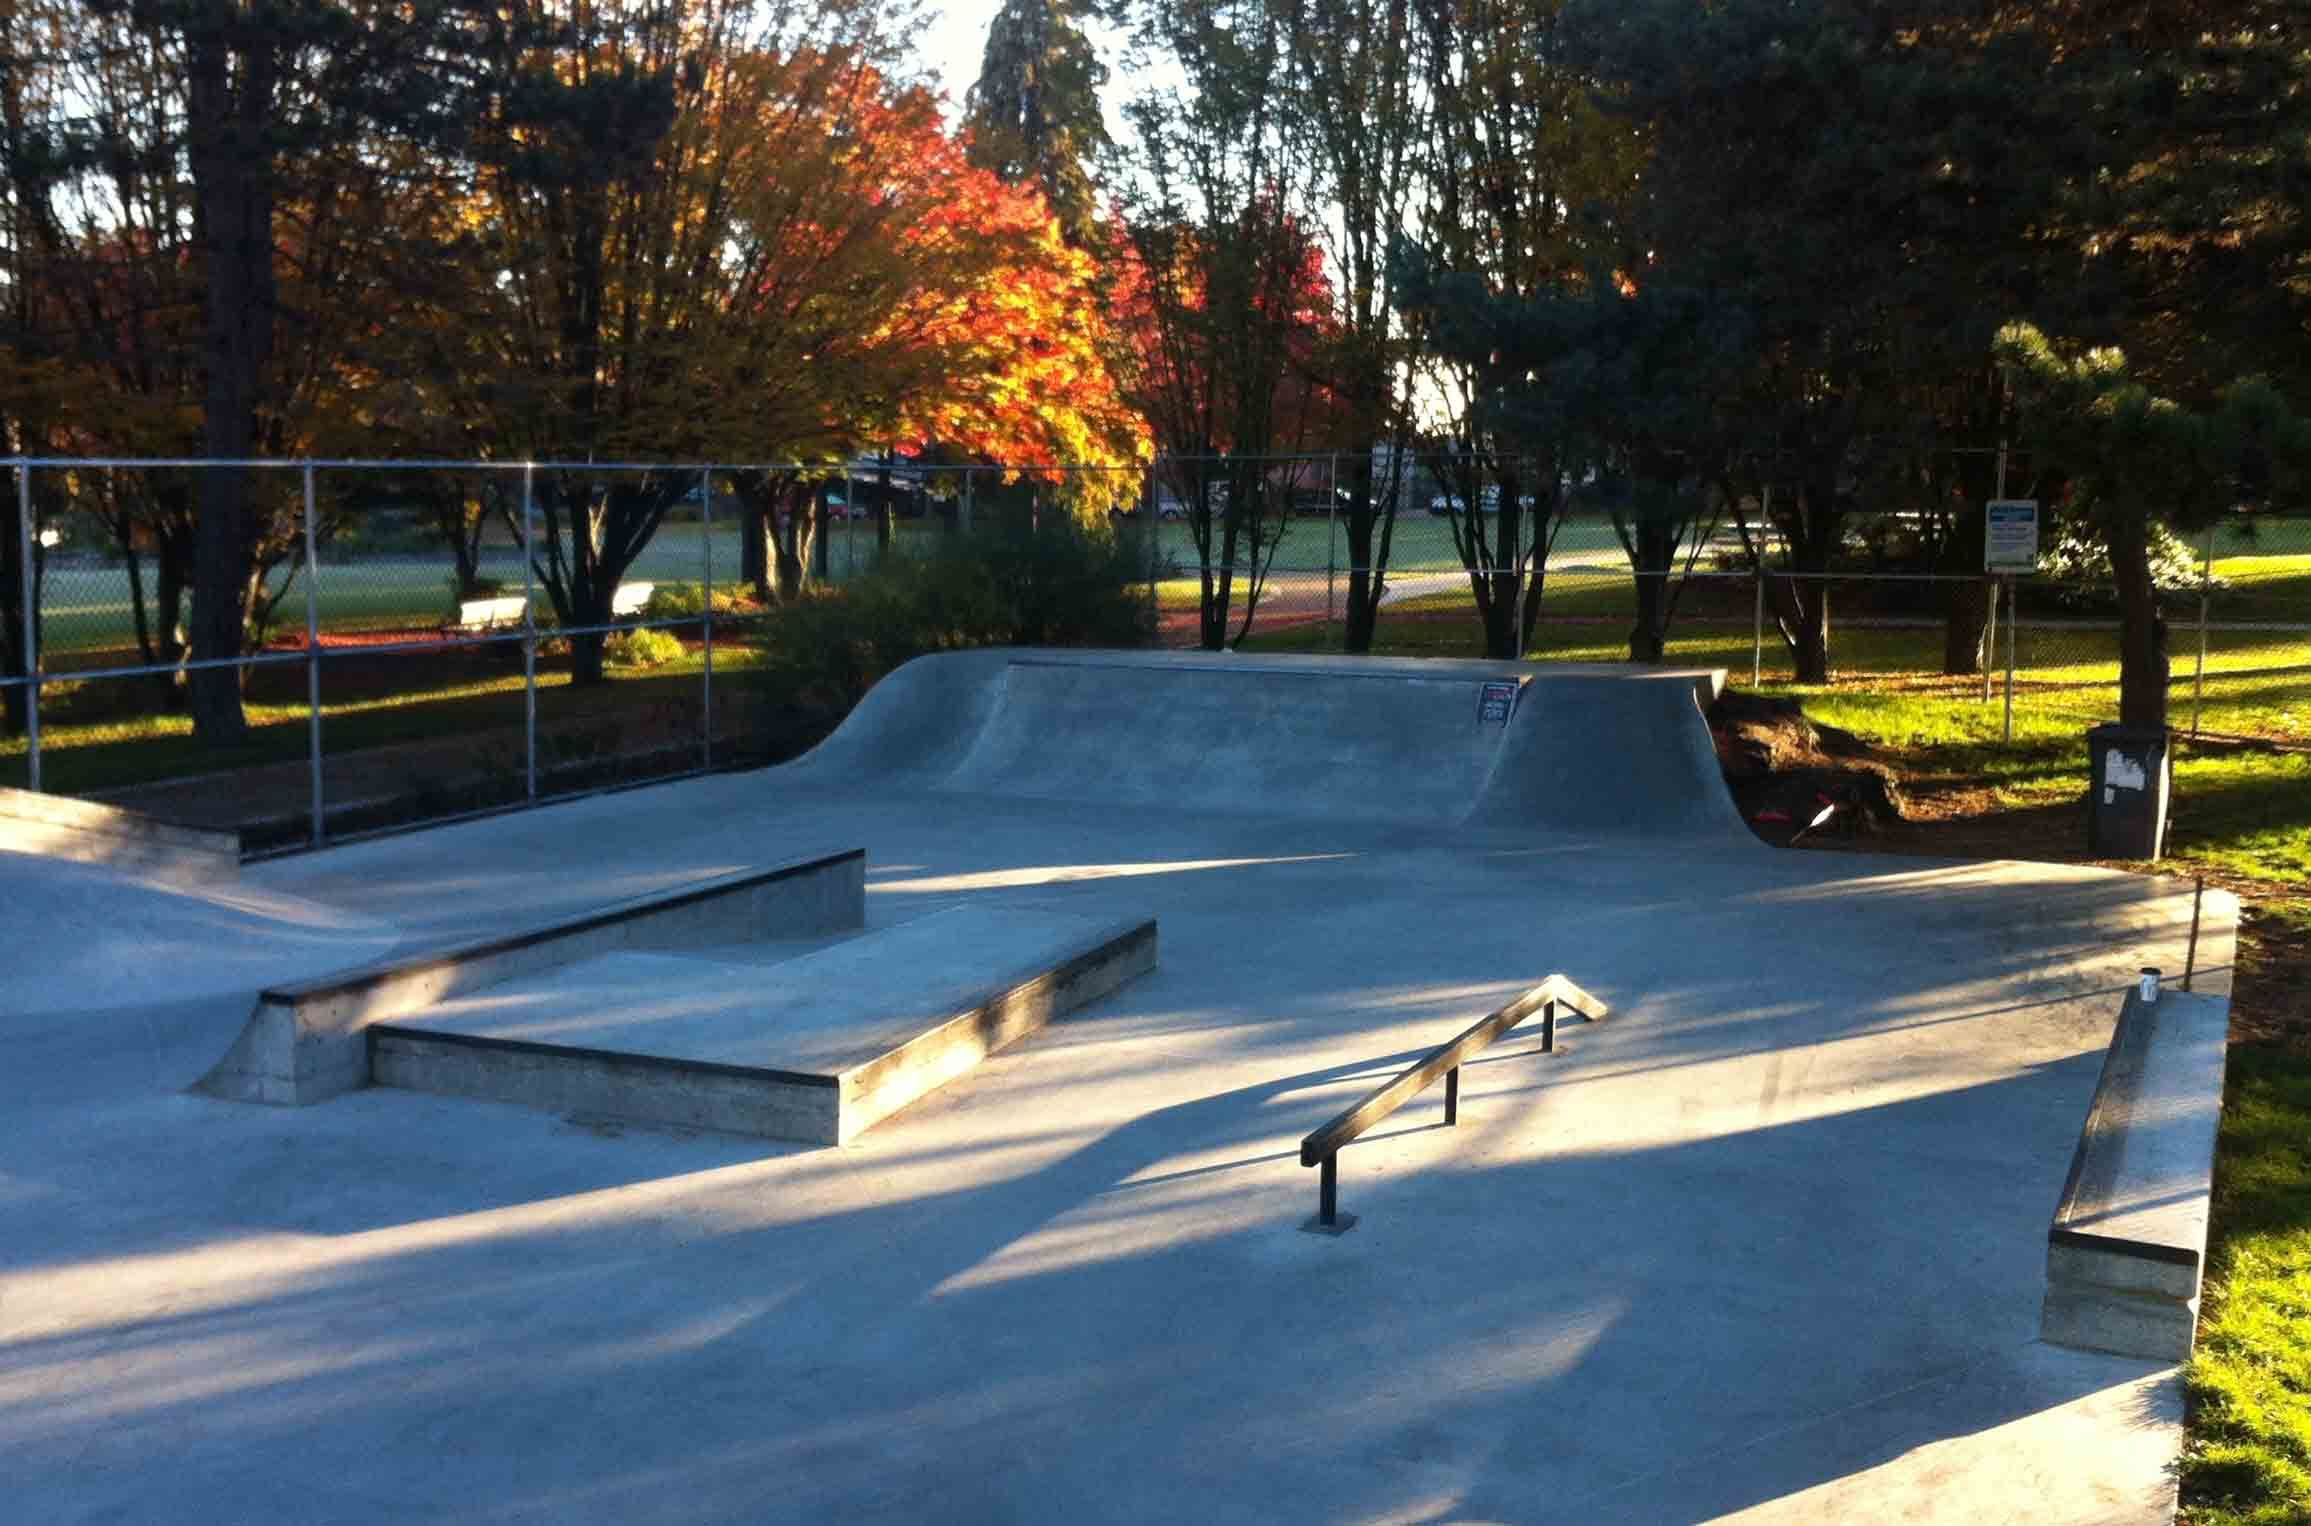 sick skatepark Google Search Skateboard park, Park